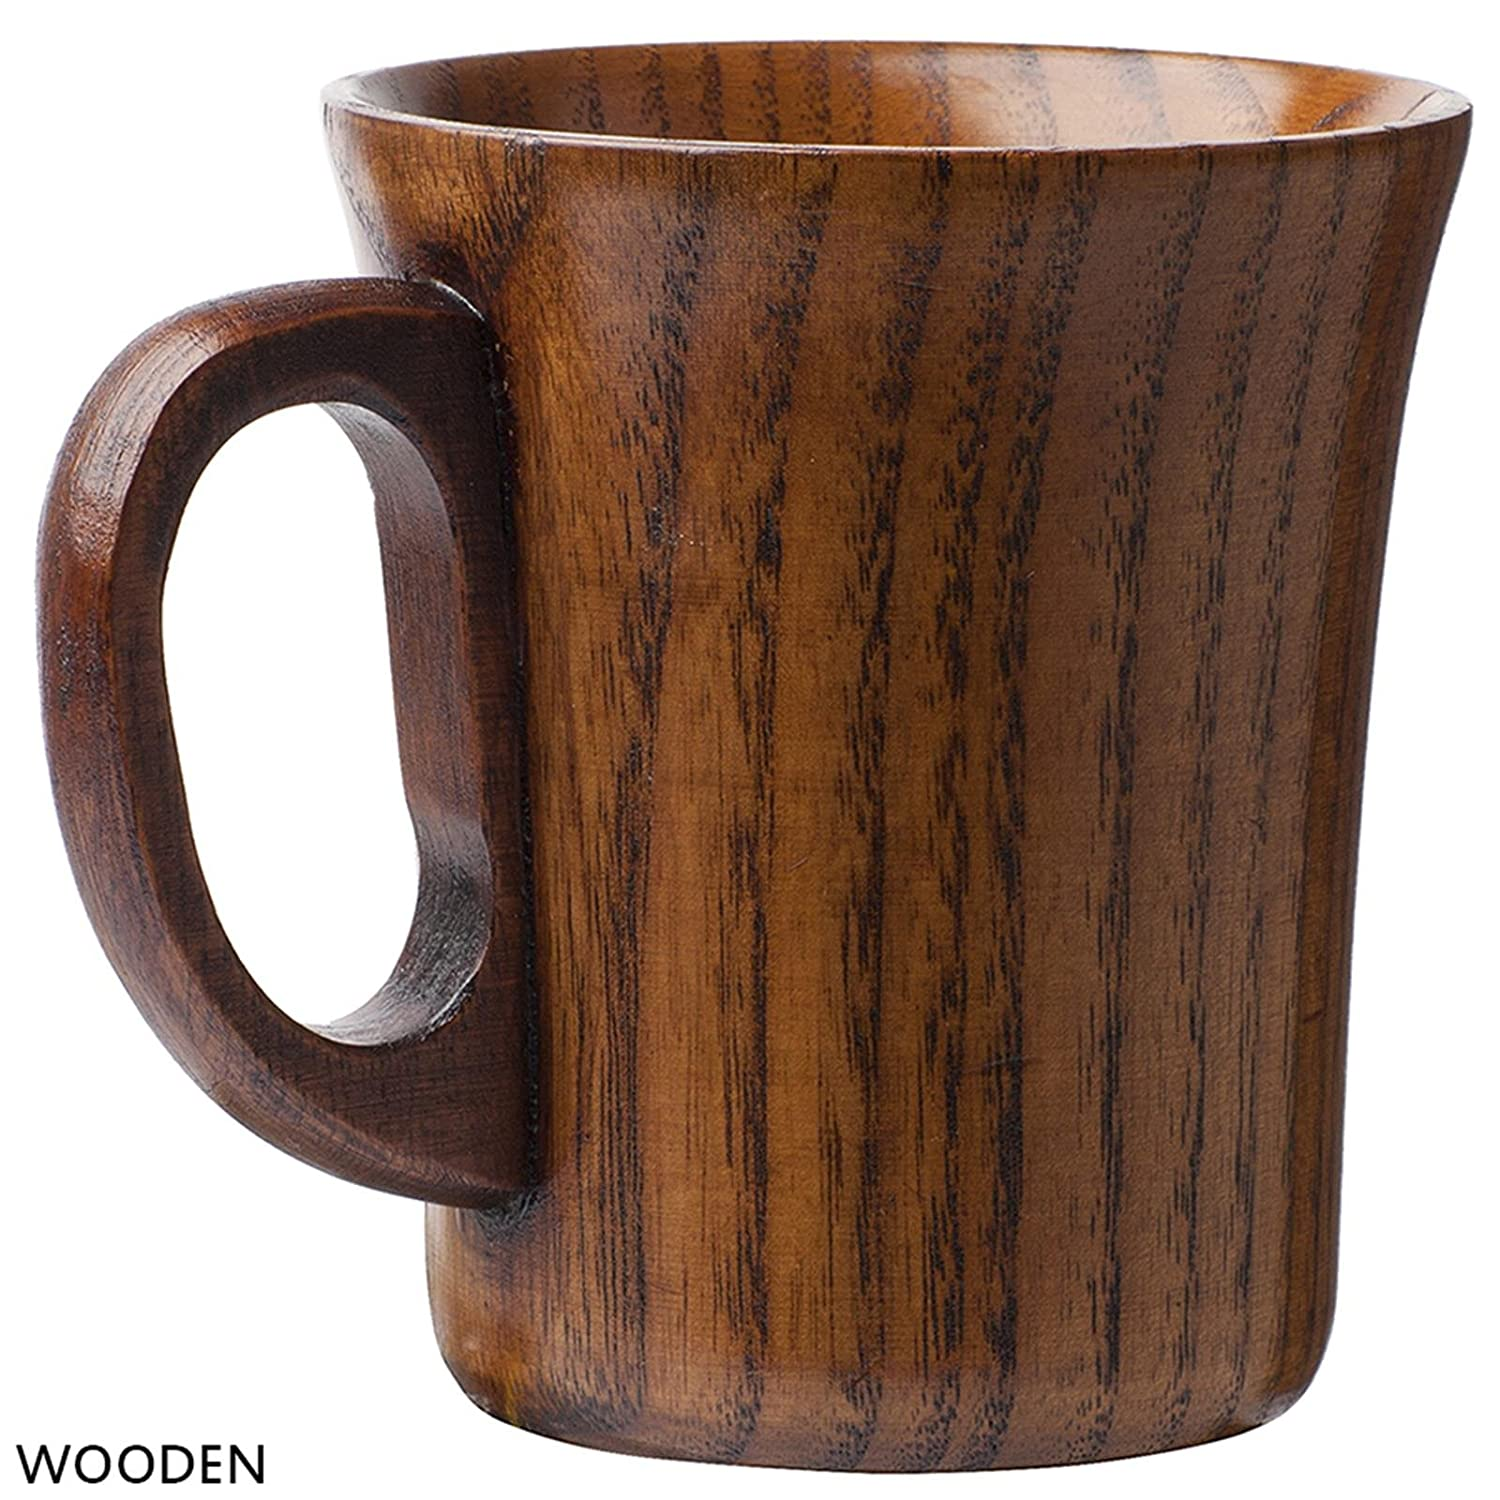 https://www.amazon.com/Natural-Wood-Wooden-Mug-TGO/dp/B00P98I10E